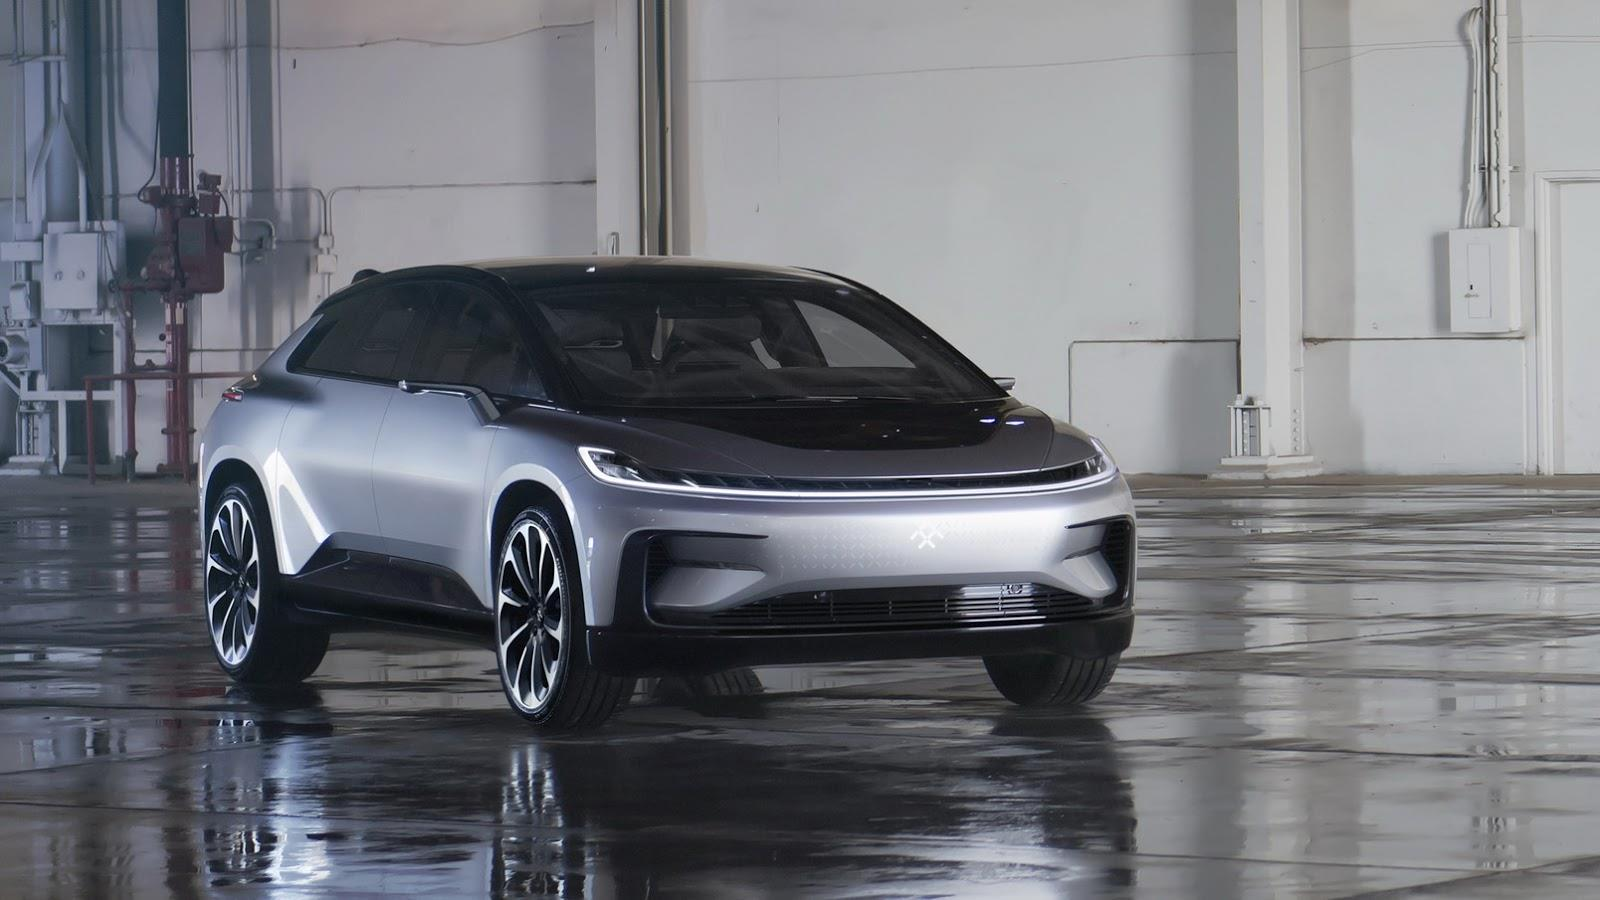 Faraday Future FF 91 image gallery